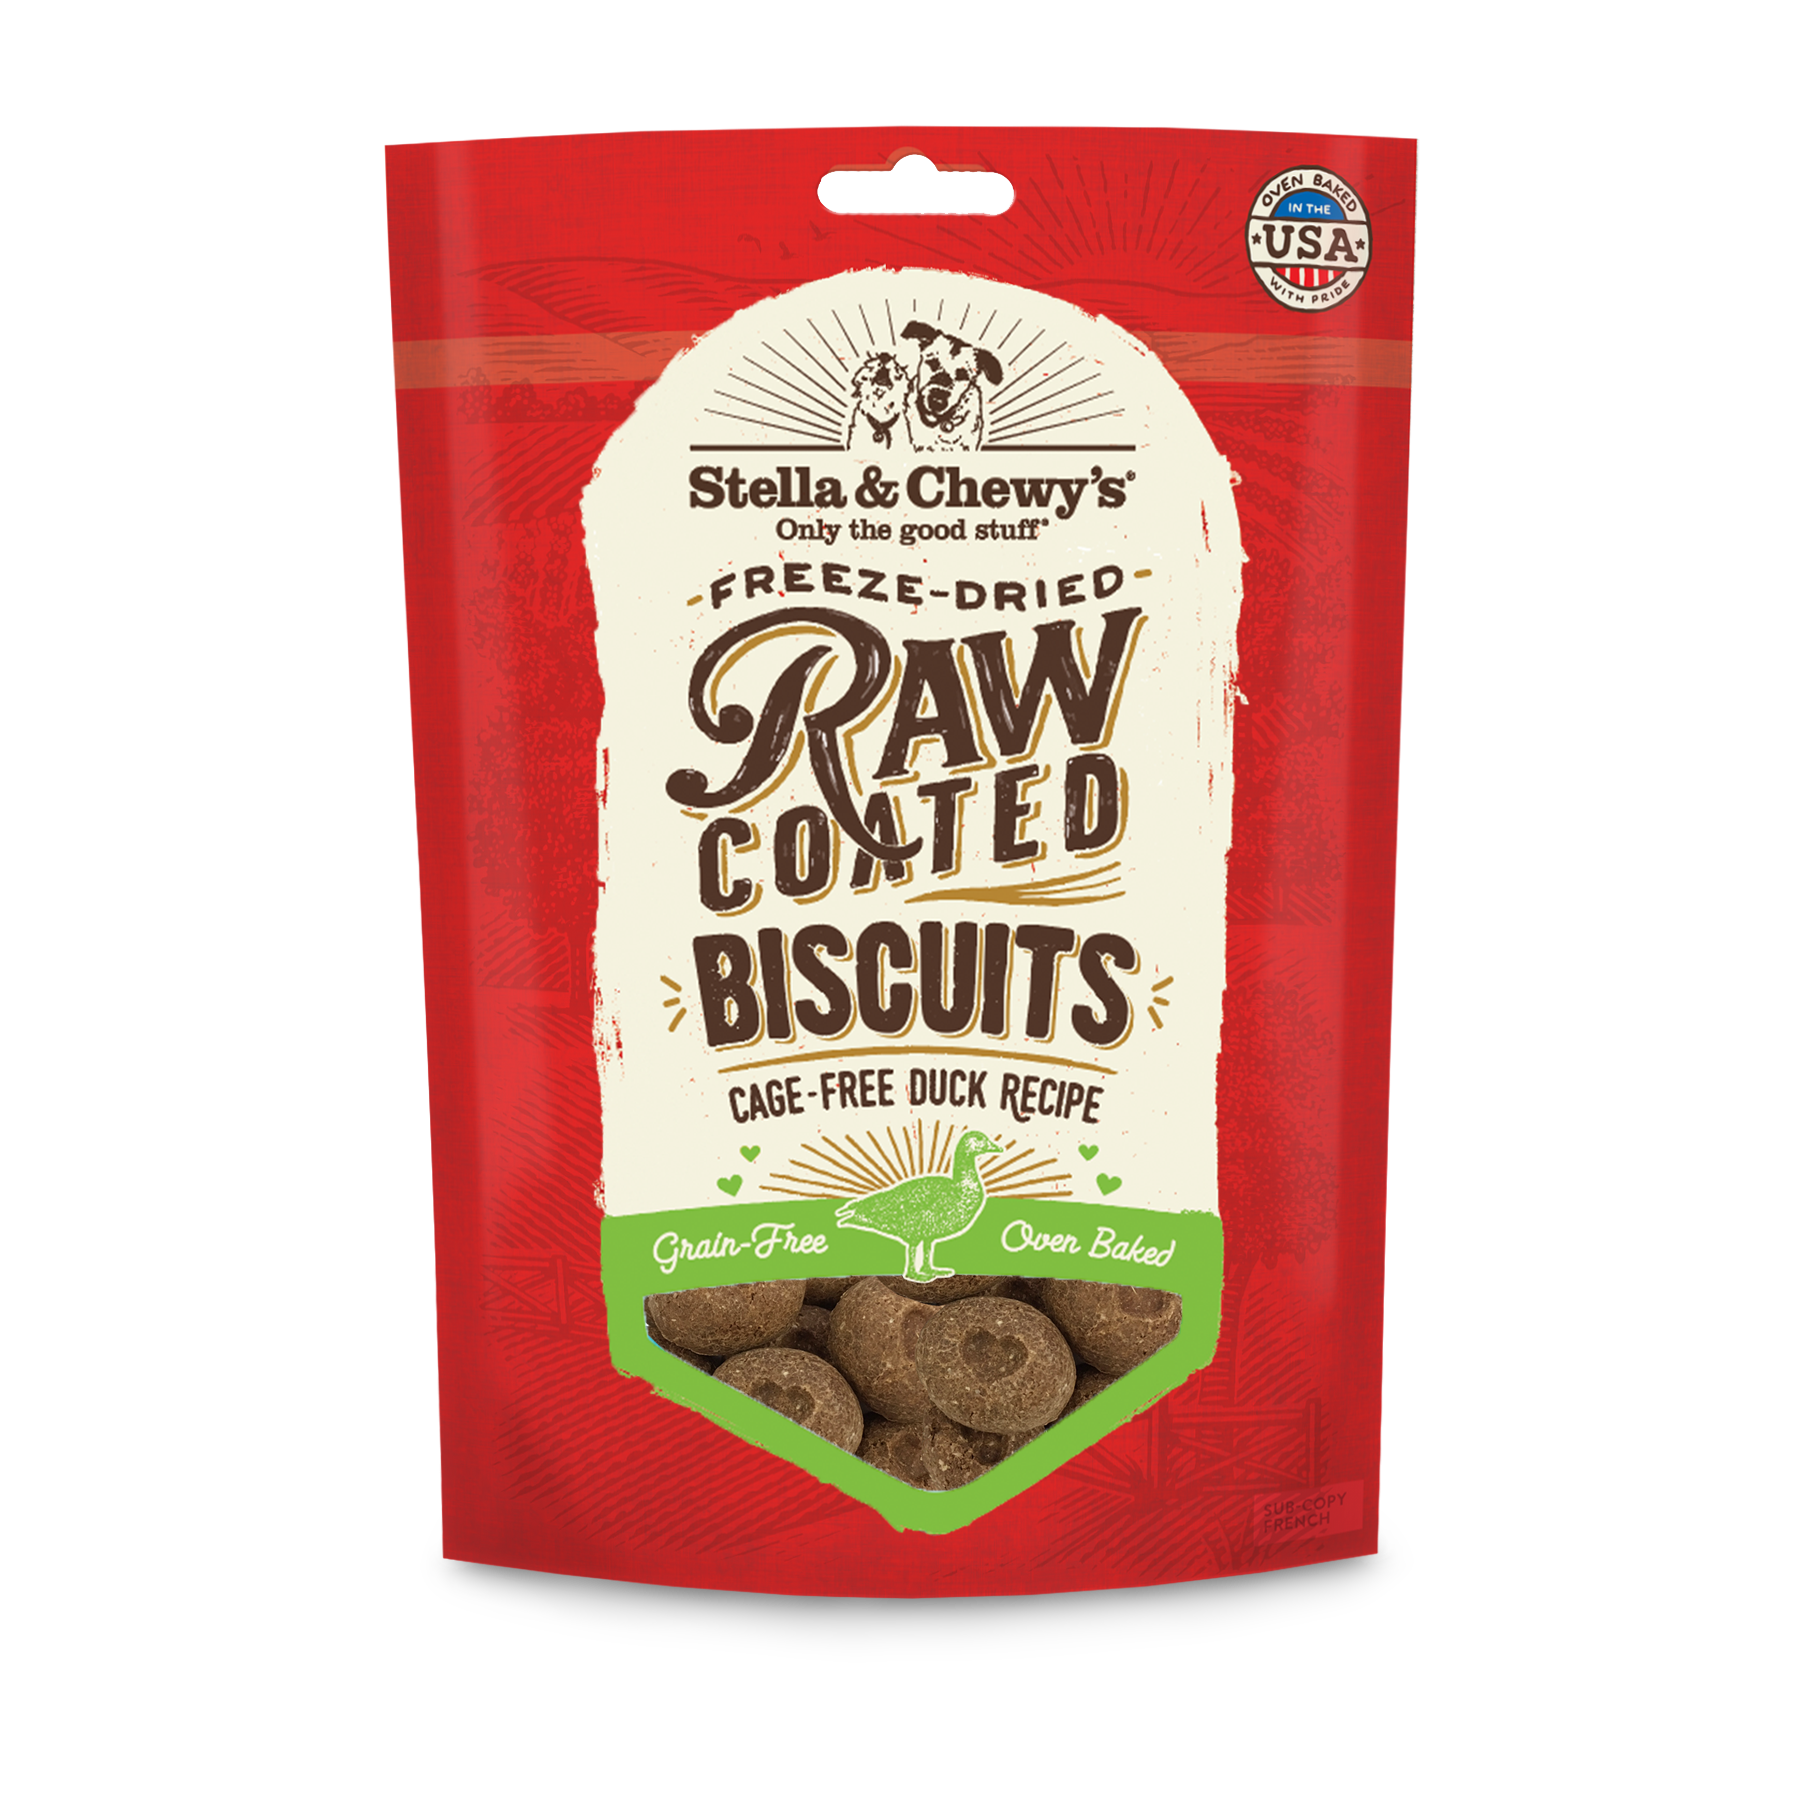 Stella & Chewy's Raw Coated Biscuits Cage-Free Duck Recipe Dog Treat, 9-oz